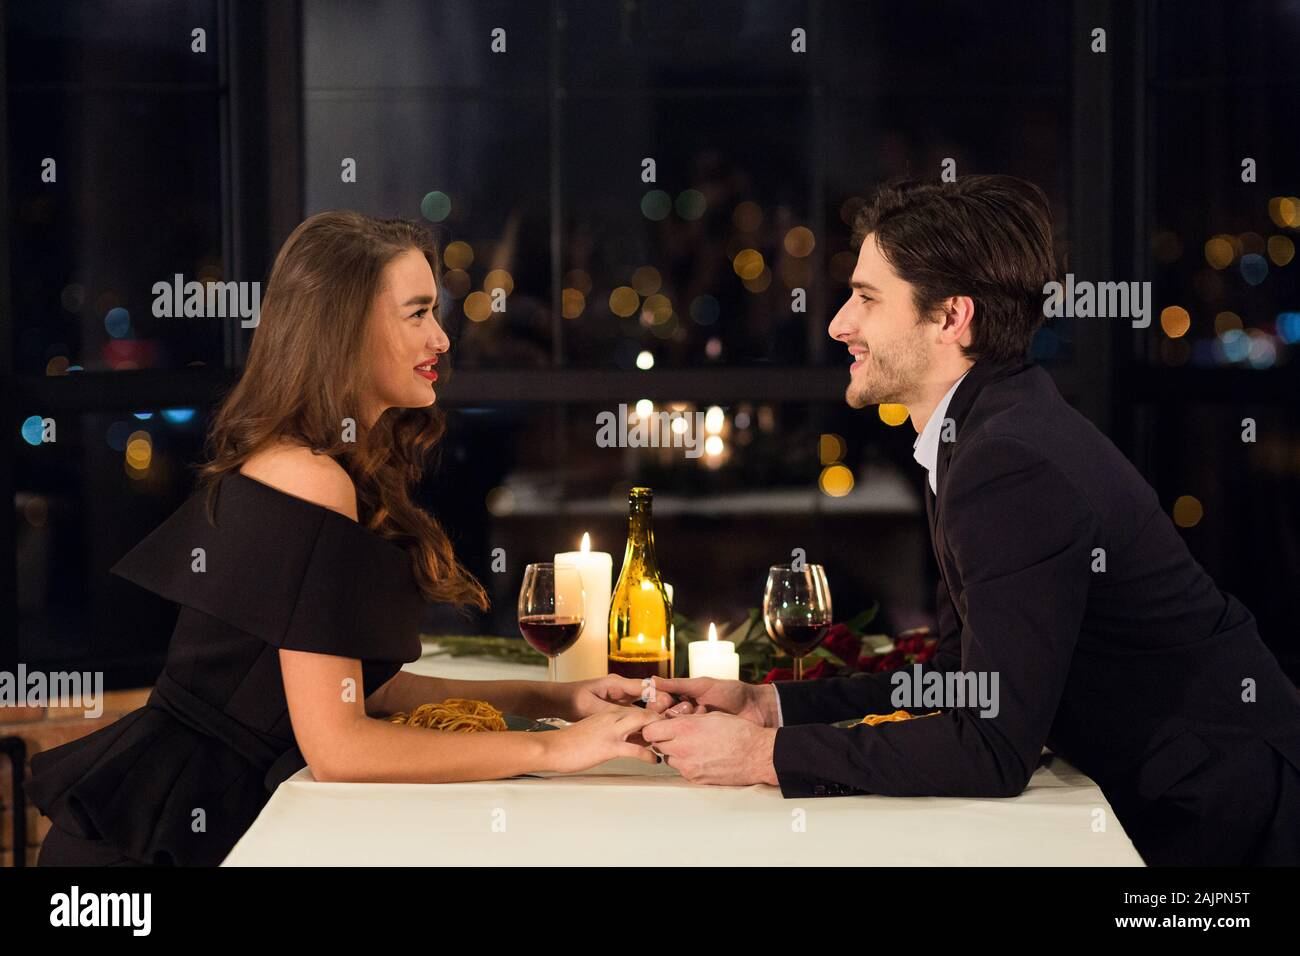 Romantic Date Beautiful Young Couple Dining In Luxury Restaurant Side View Stock Photo Alamy